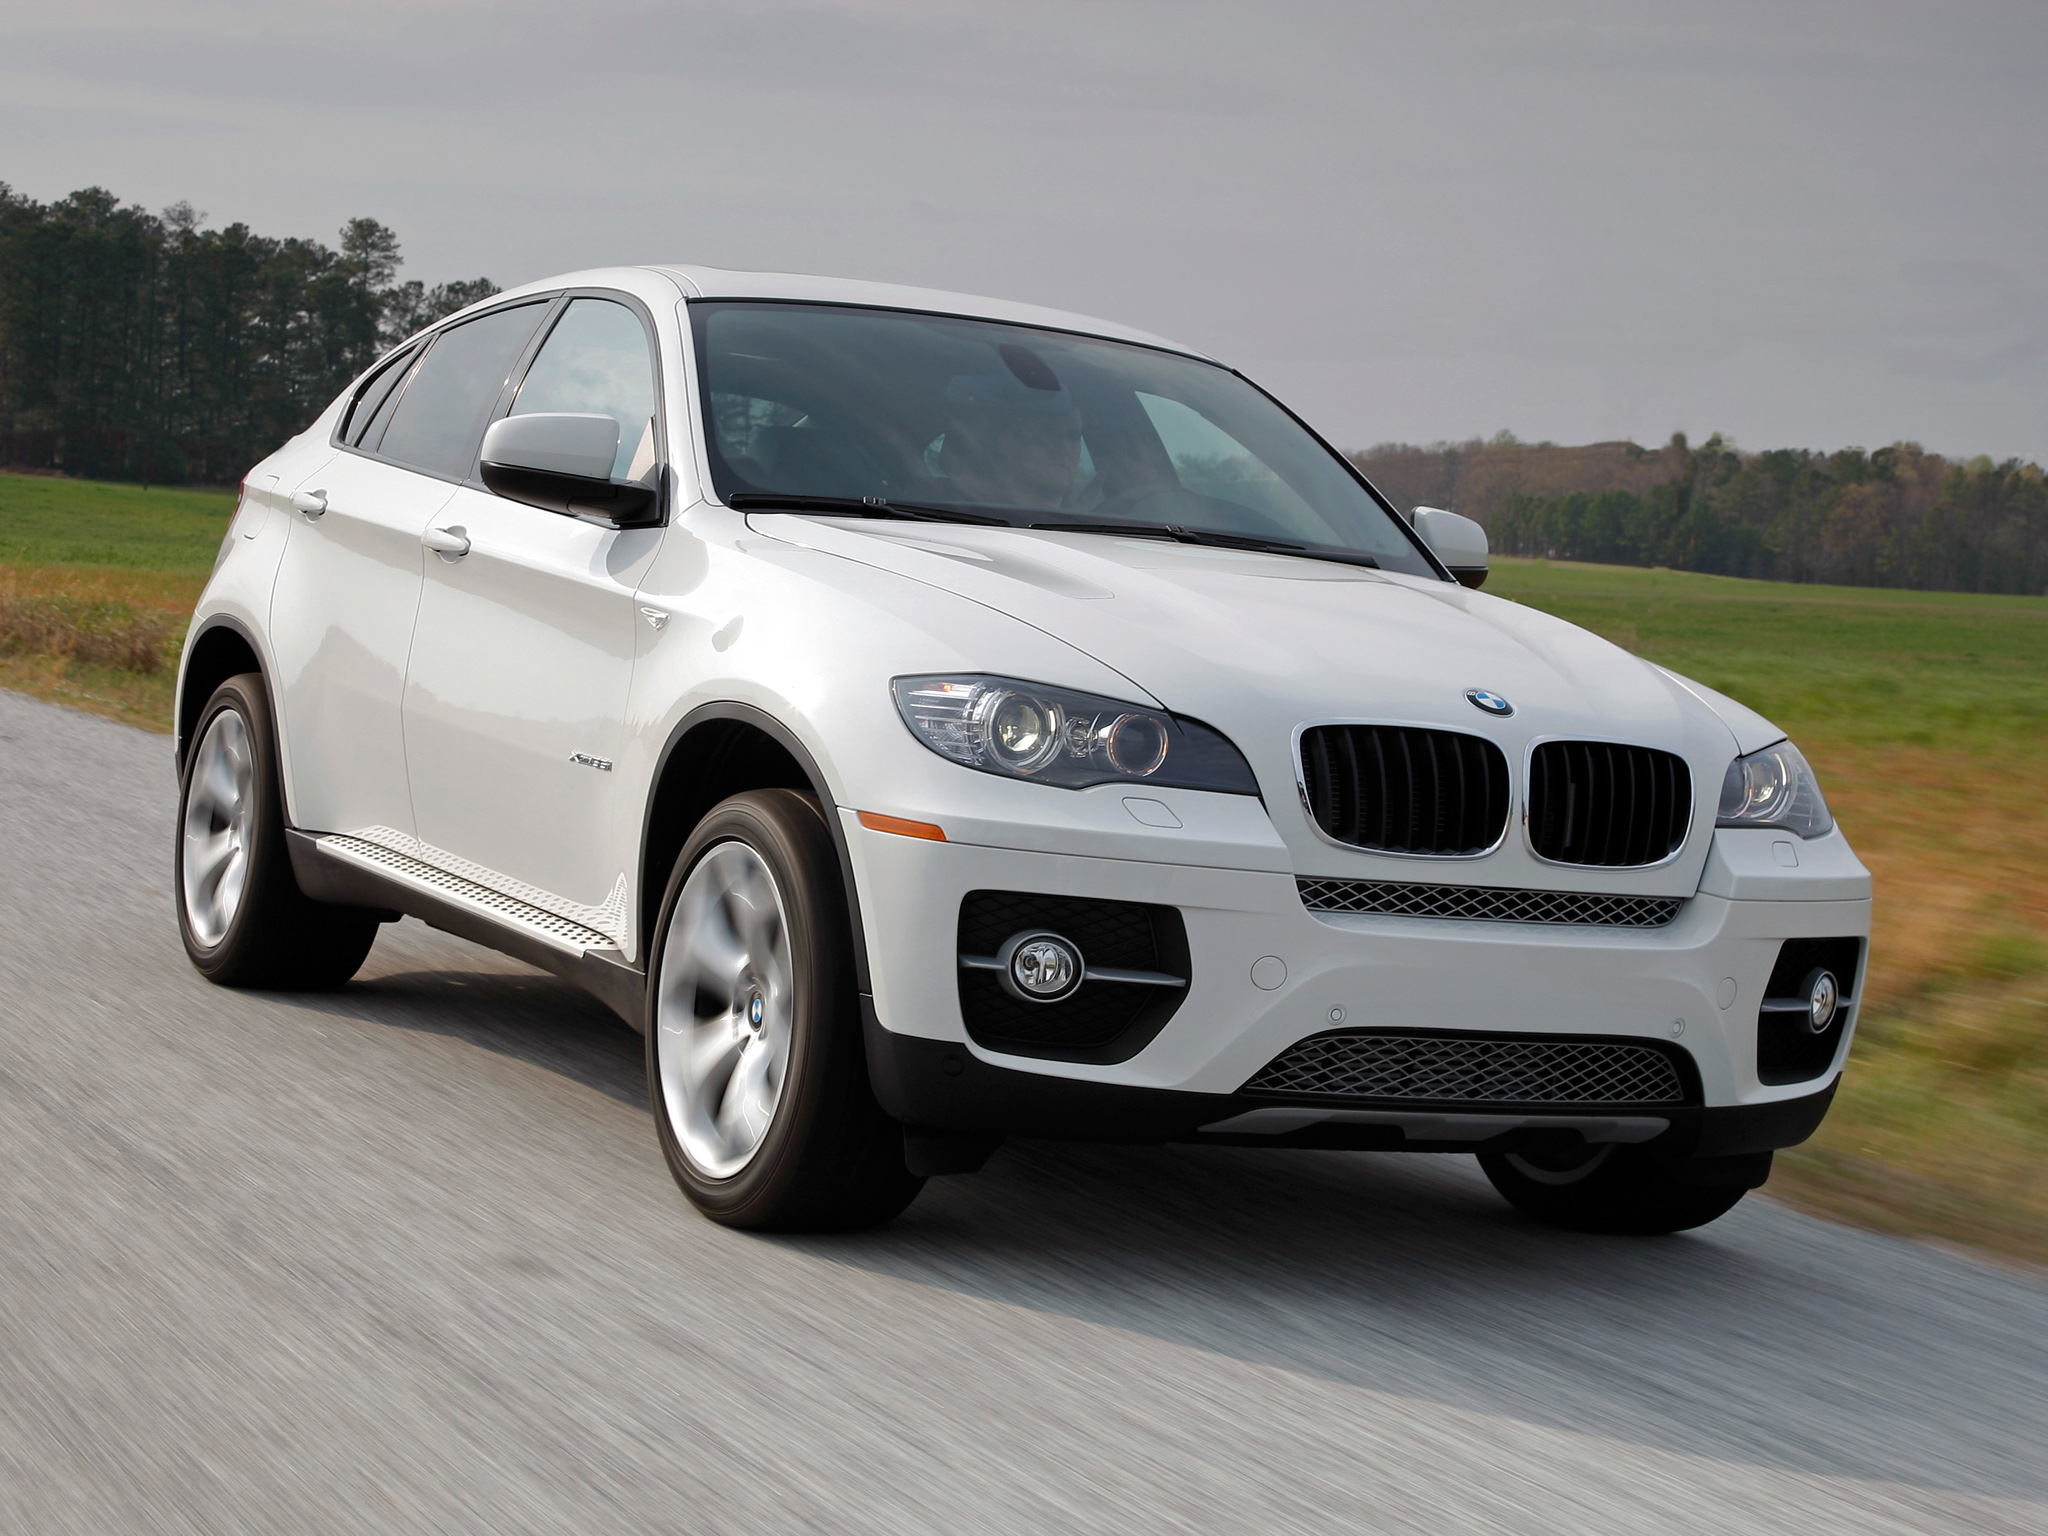 BMW X6 xDrive35i 2008 photo - 4